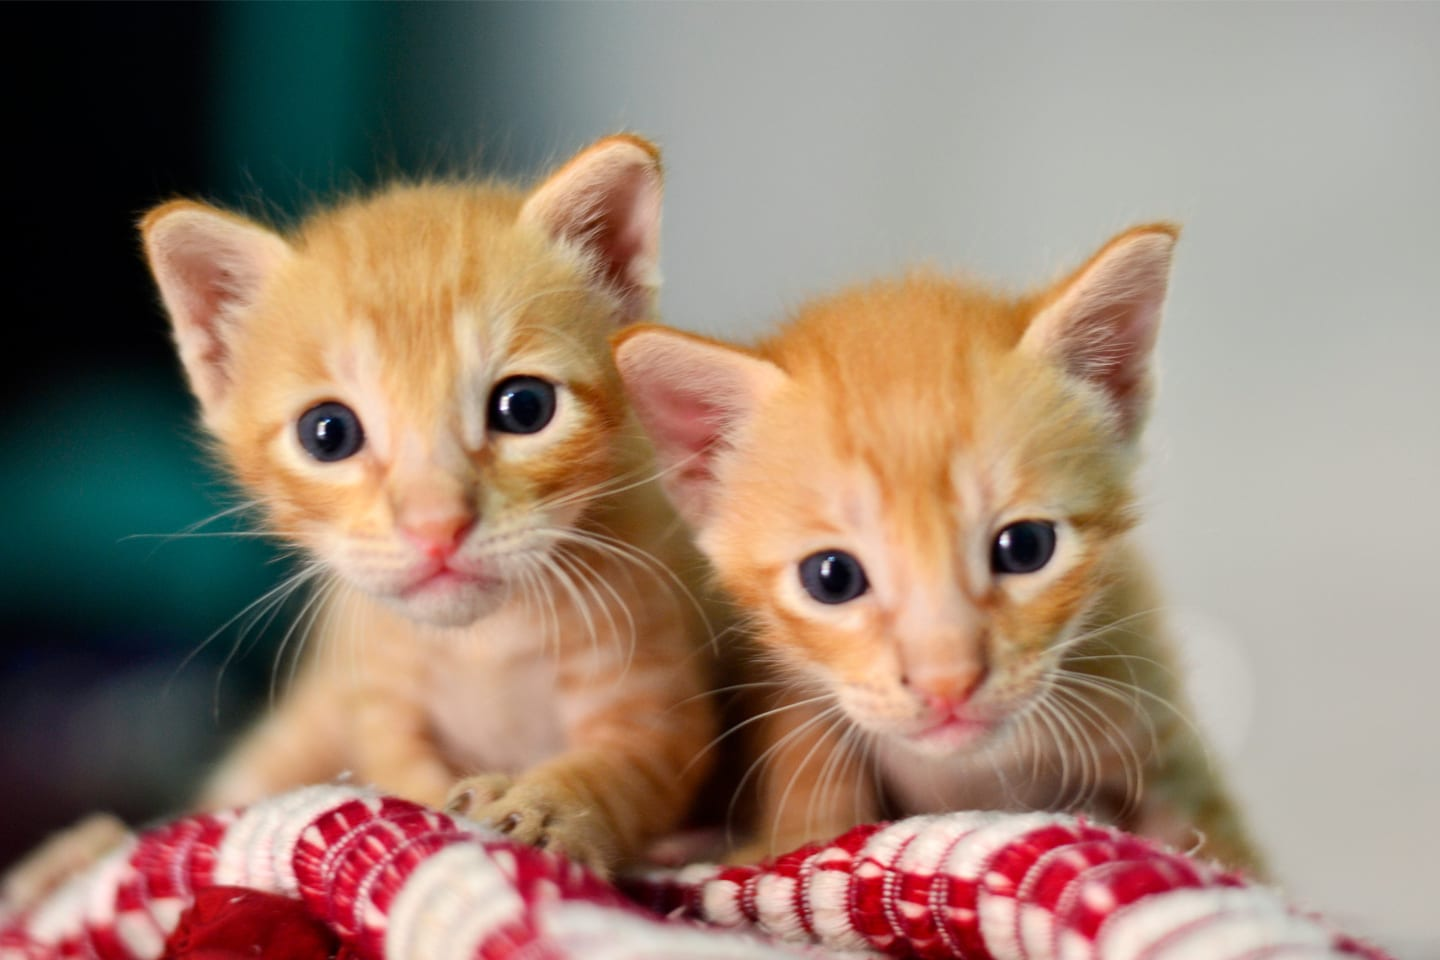 Two orange kittens on red & white blanket